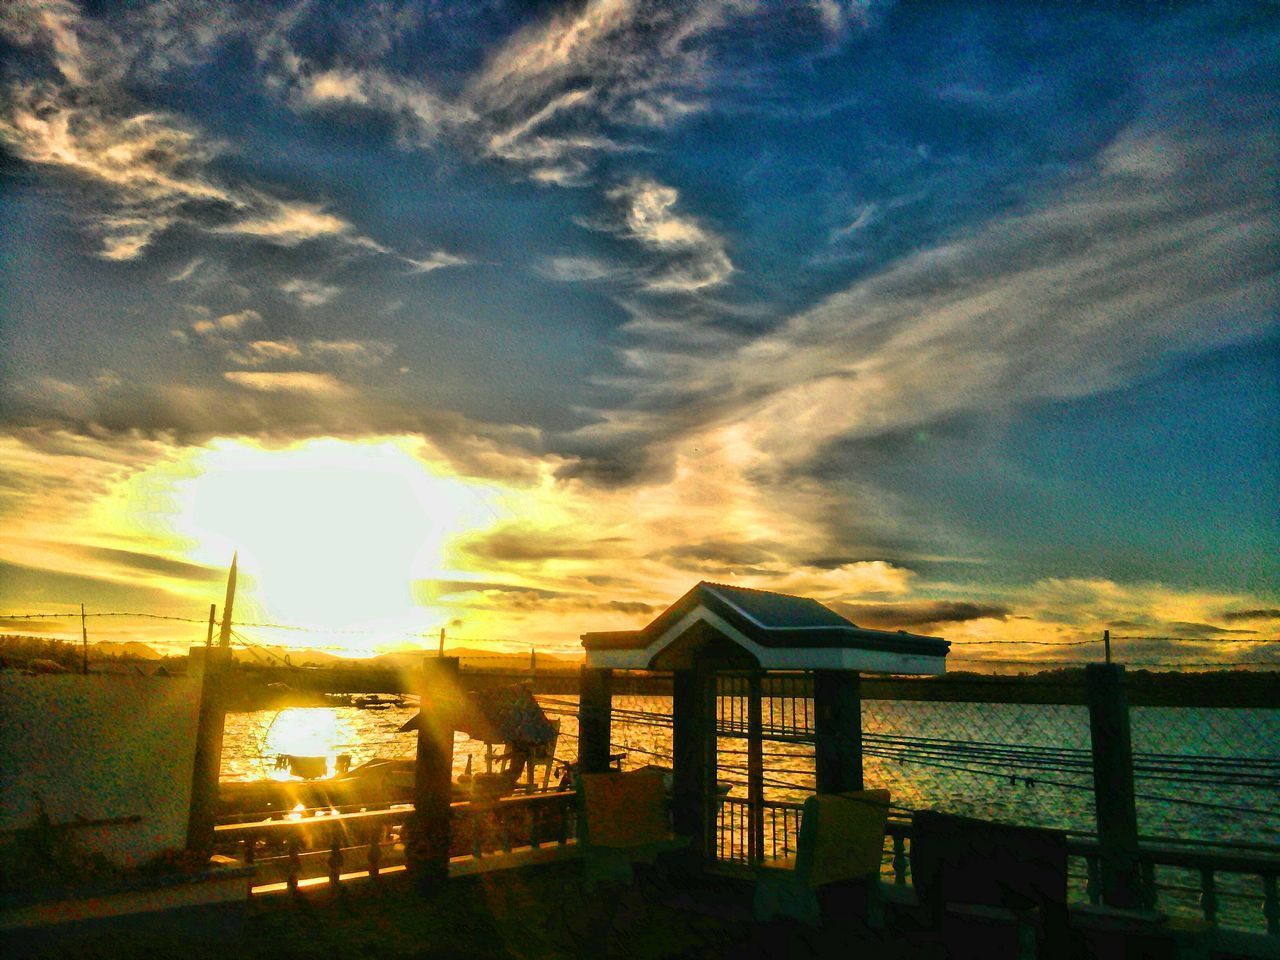 sky, sunset, cloud - sky, water, sea, no people, sunlight, nature, outdoors, tranquility, built structure, scenics, sun, beauty in nature, tranquil scene, horizon over water, architecture, beach, building exterior, day